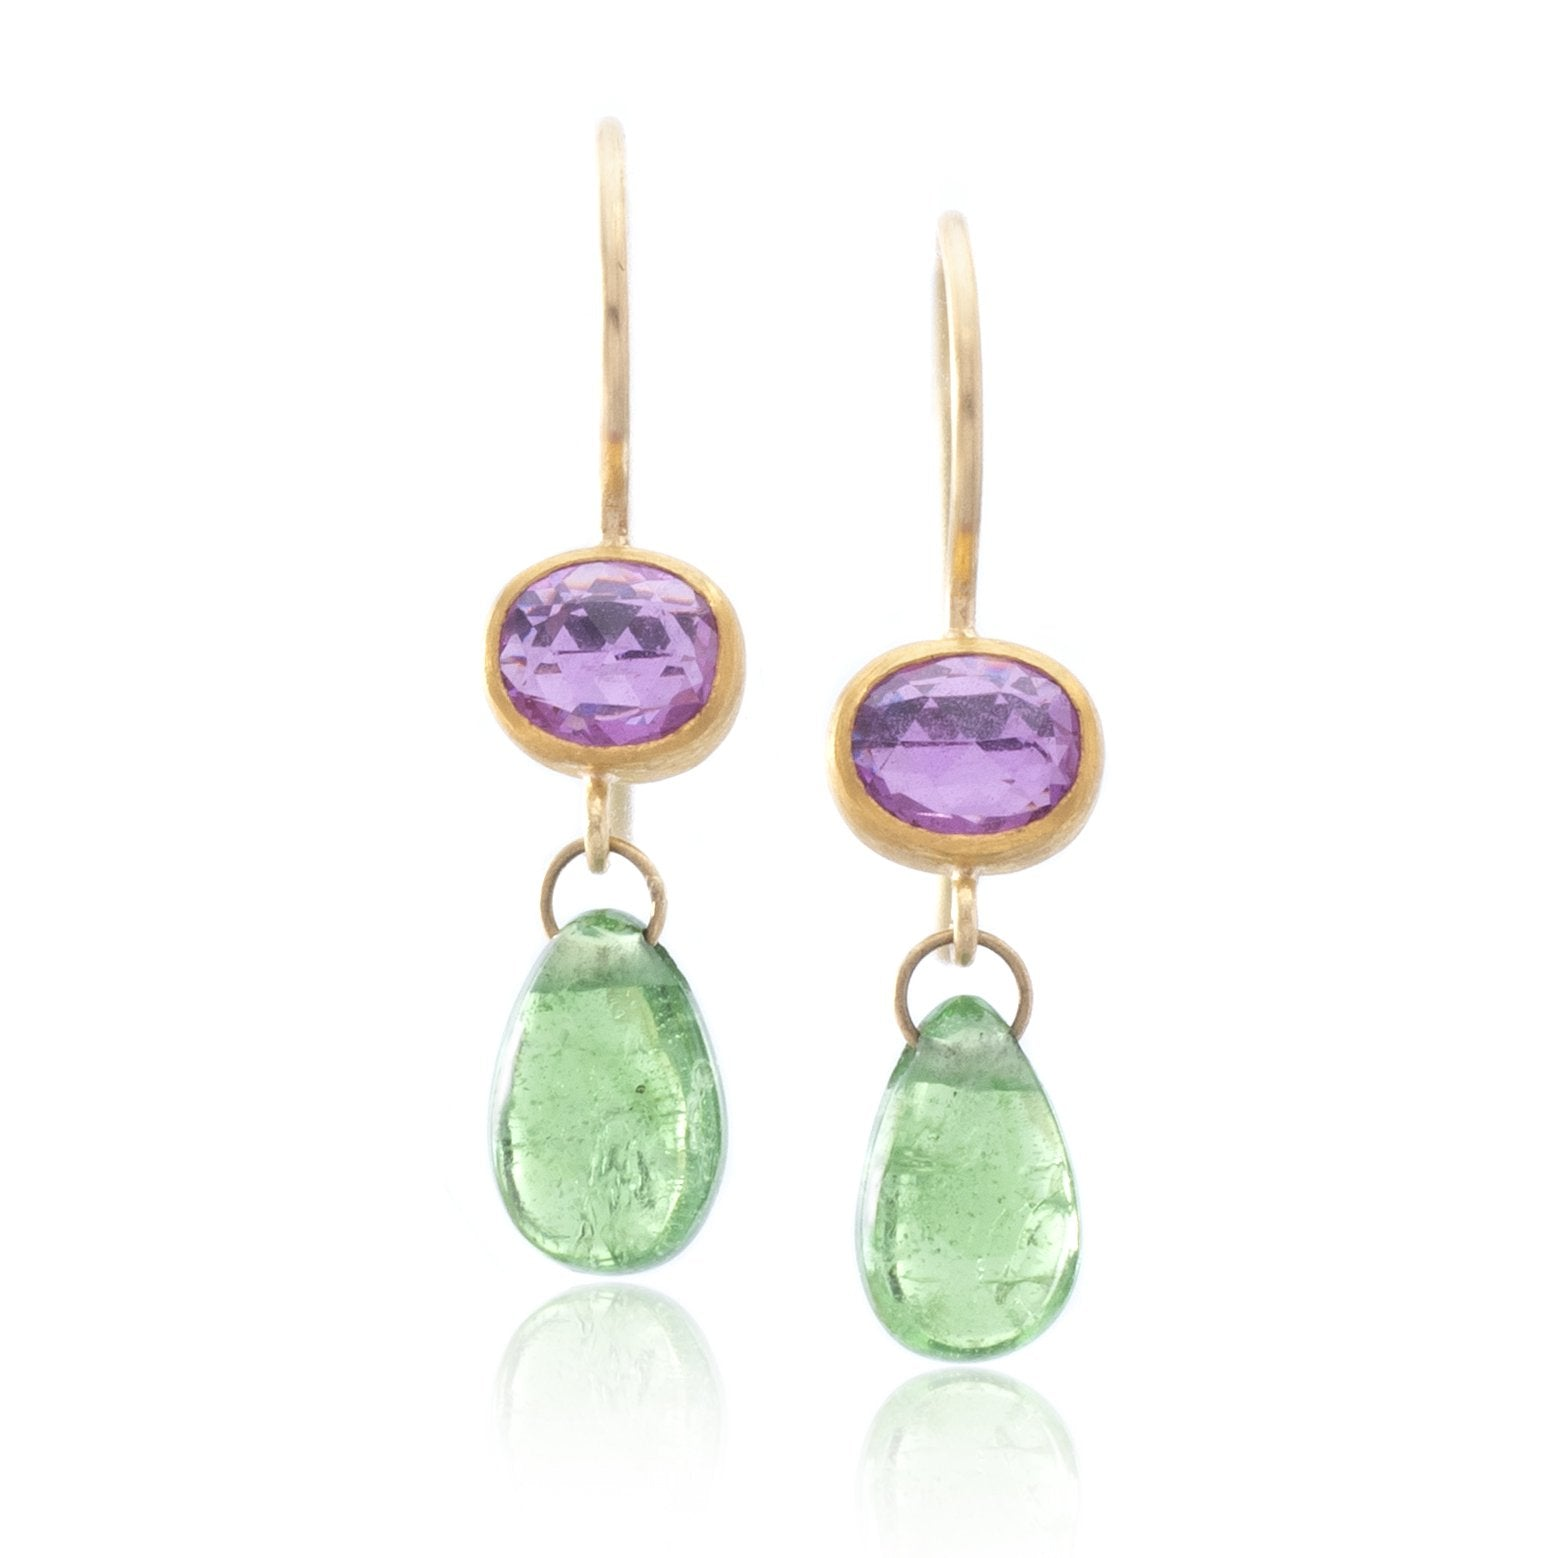 22K and 18K Yellow Gold Pink Sapphire and Tsavorite Drop Earrings